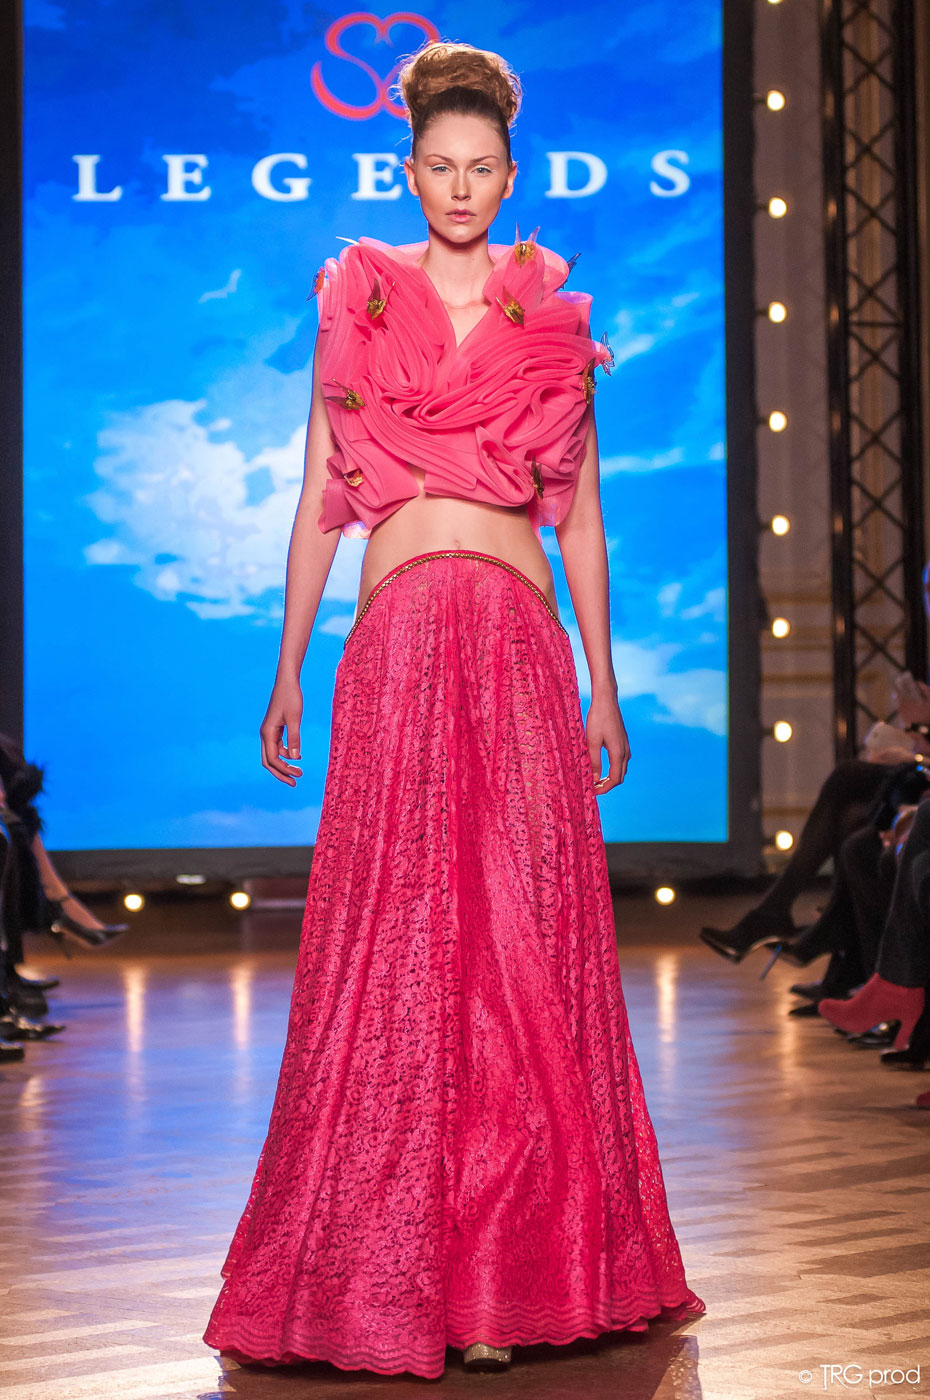 Legends-fashion-runway-show-haute-couture-paris-spring-2015-the-impression-19